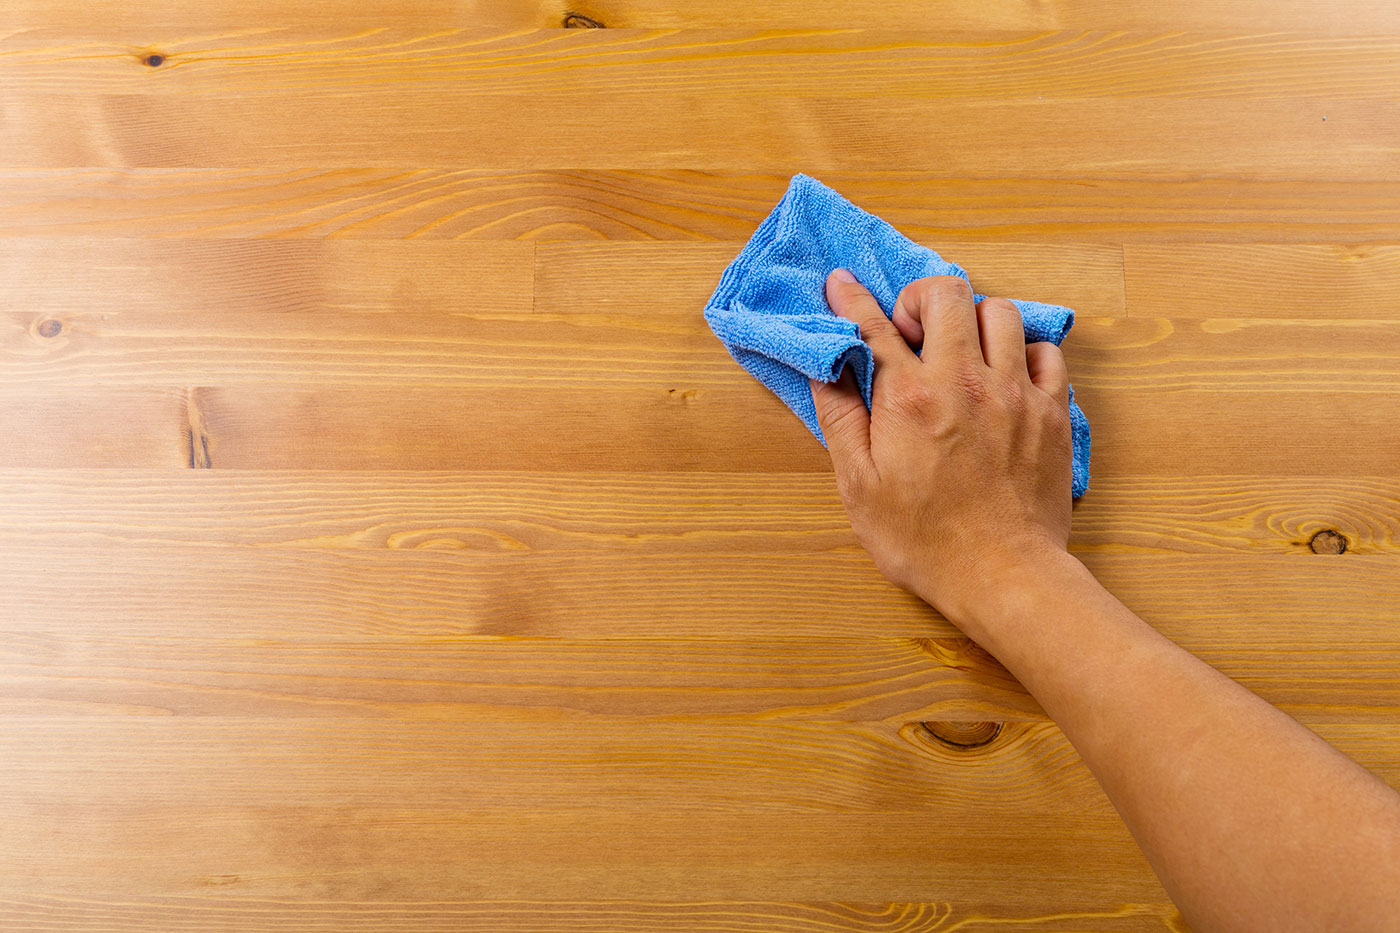 cleaning with rag